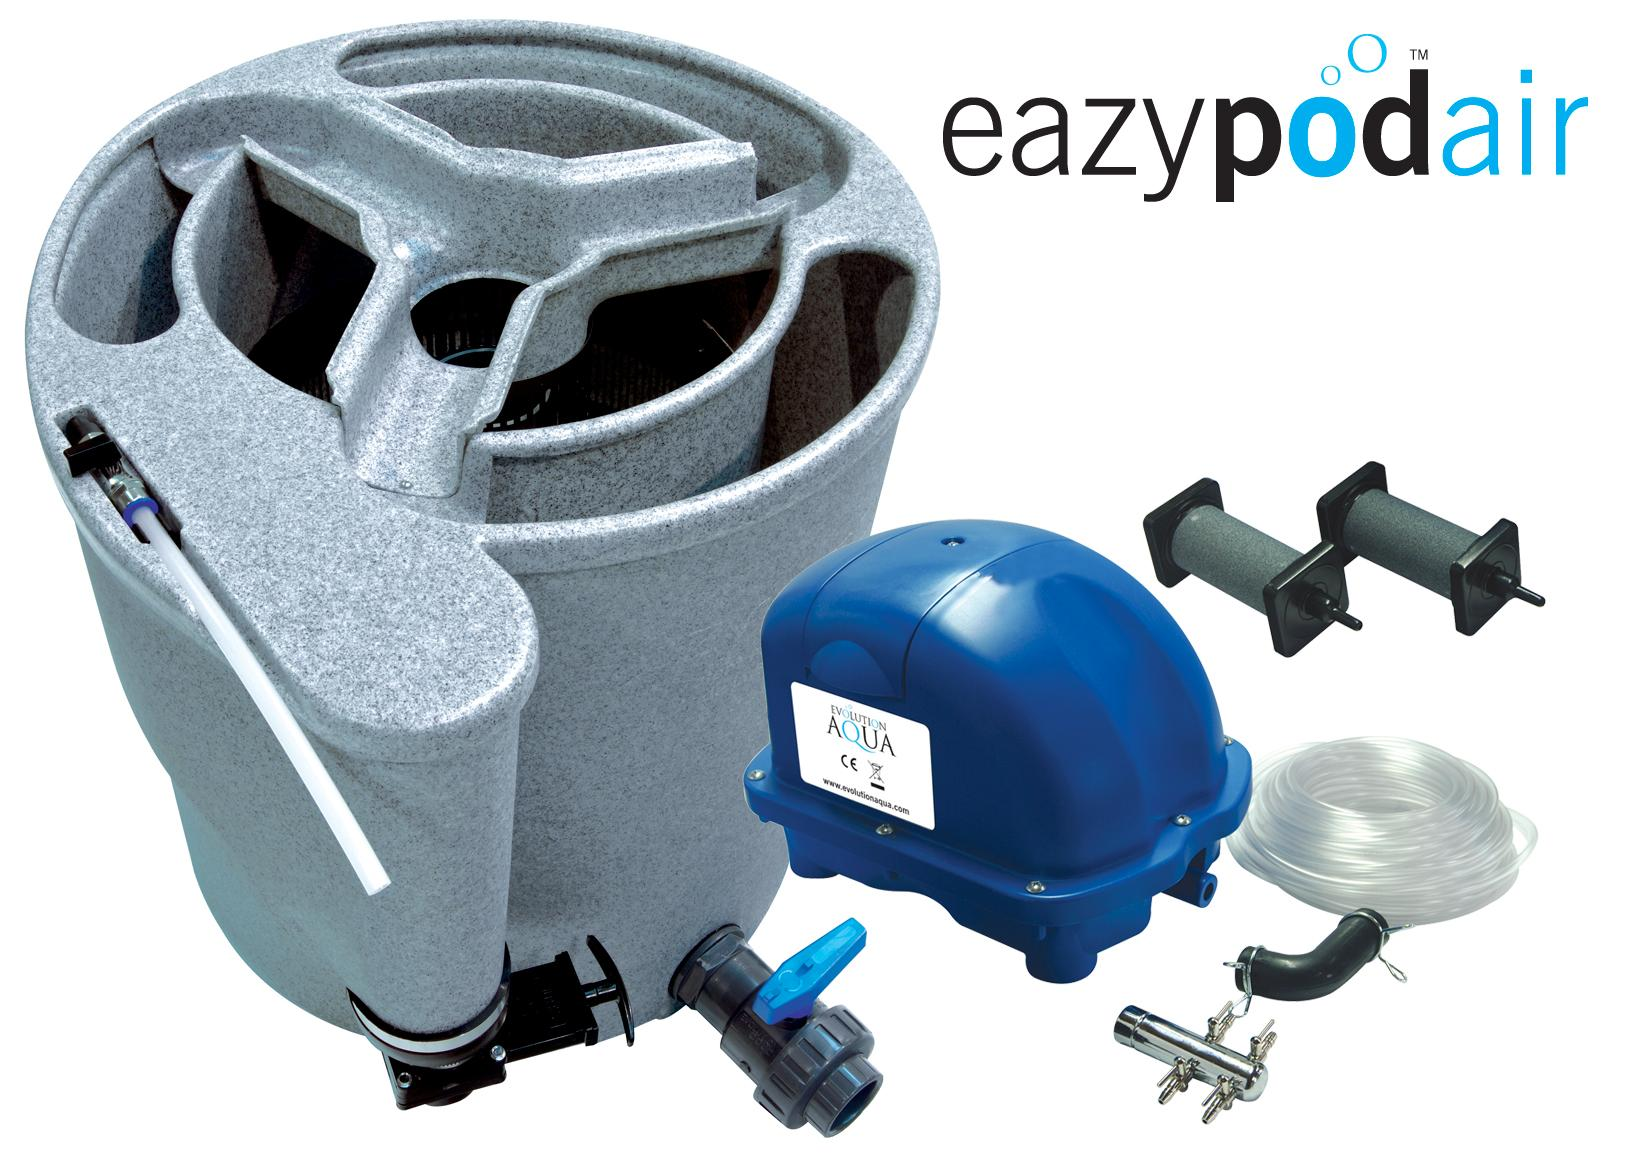 Evolution Aqua Eazy Pod Air Pond Filters Bjs Japanese Koi Carp Koi Foods Stockists Of